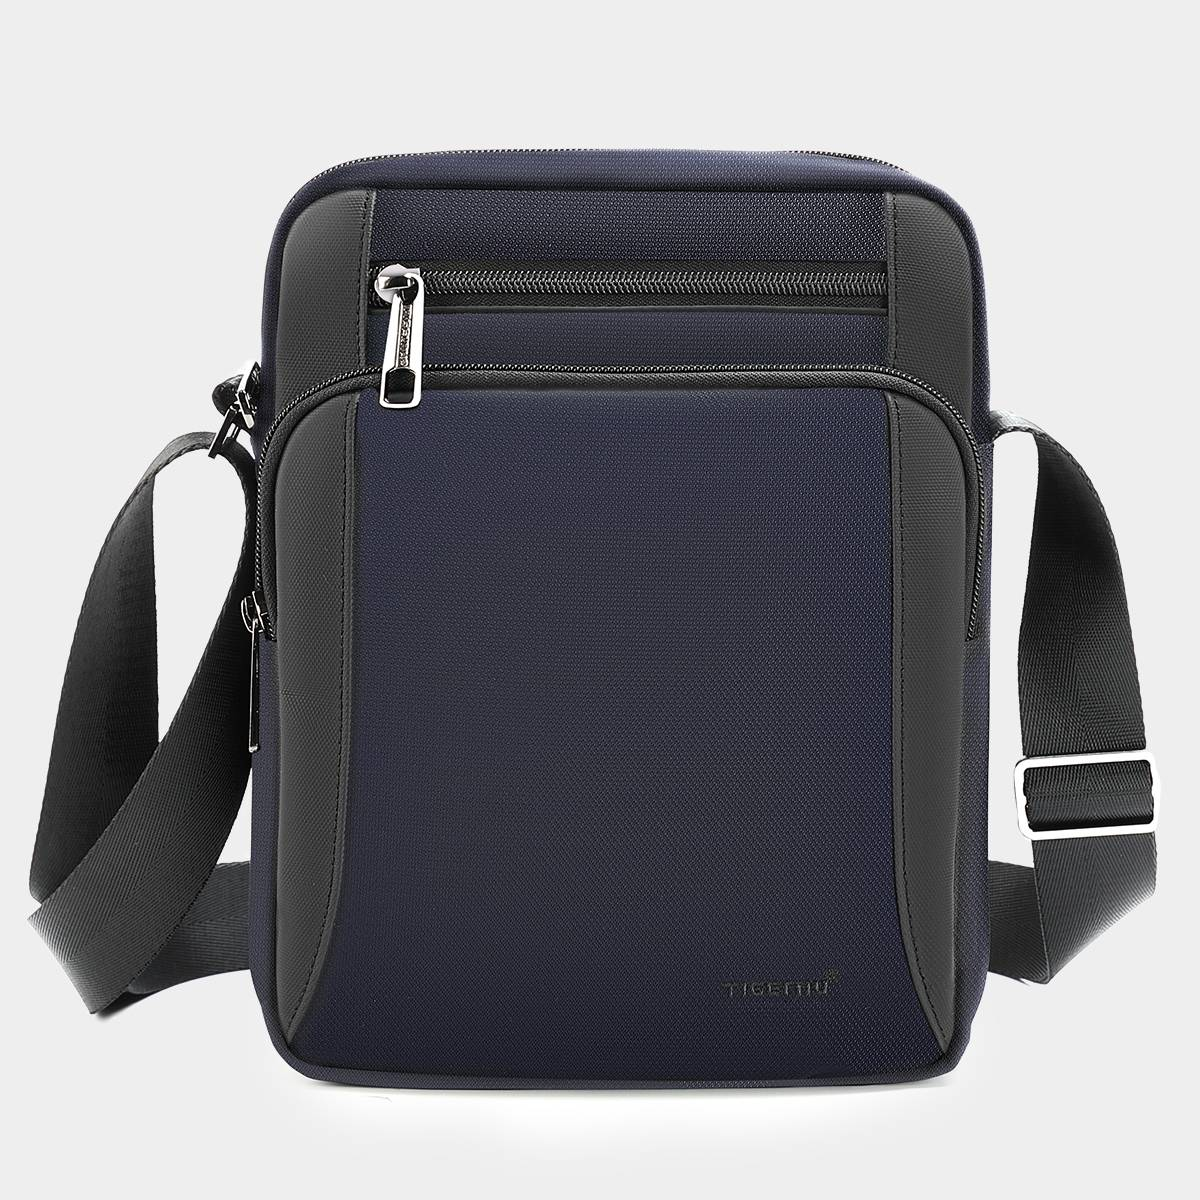 Crossbody bag T-L5191 Featured Image